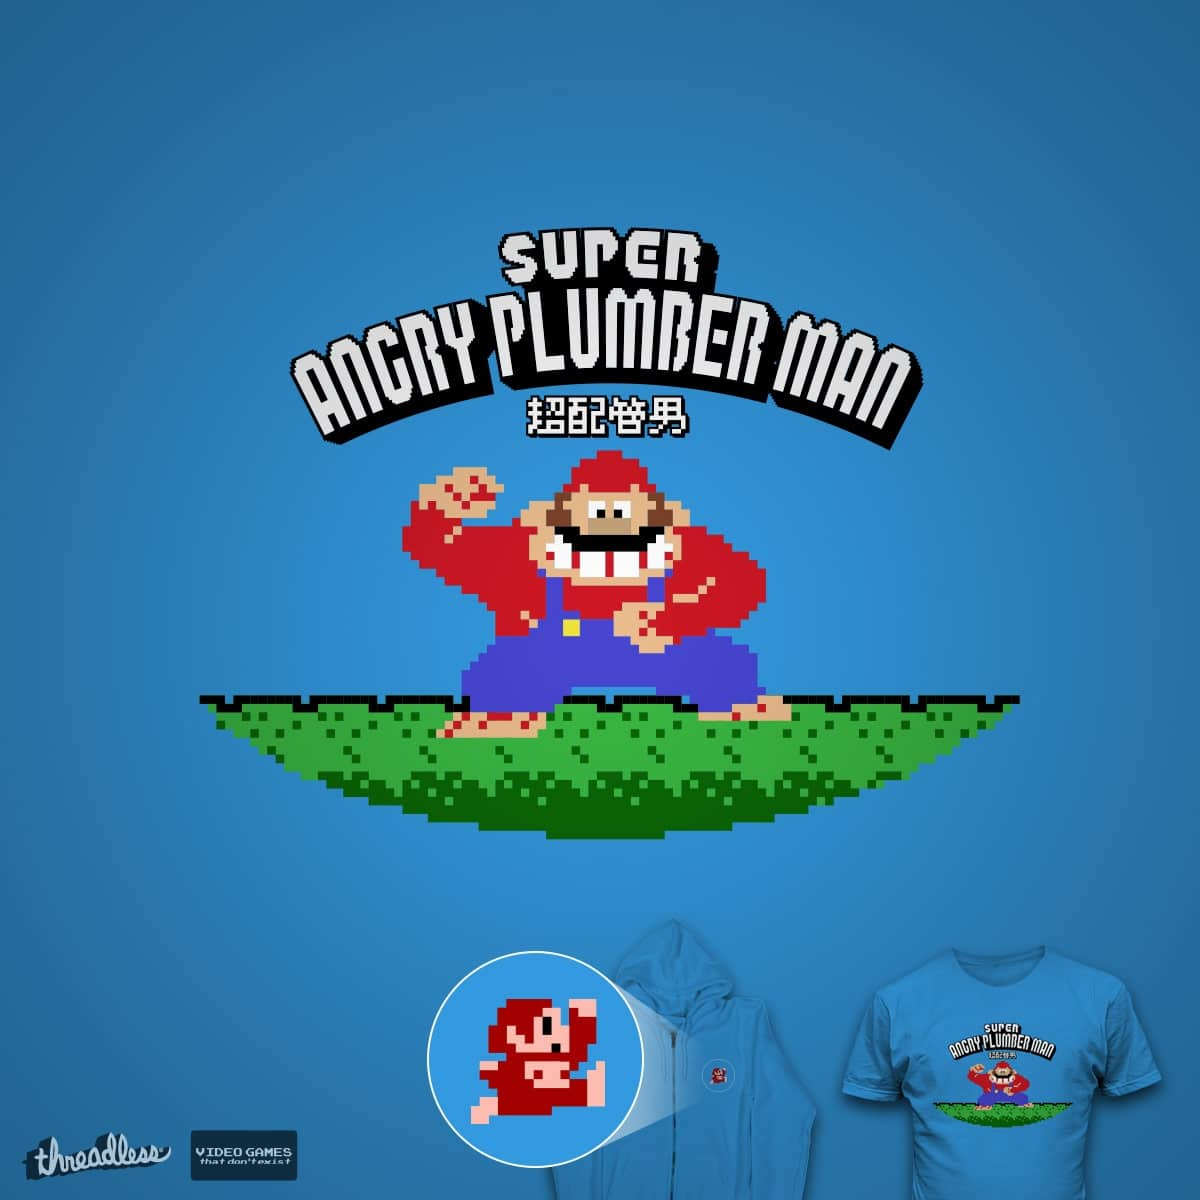 Super Angry Plumber Man by quick-brown-fox on Threadless